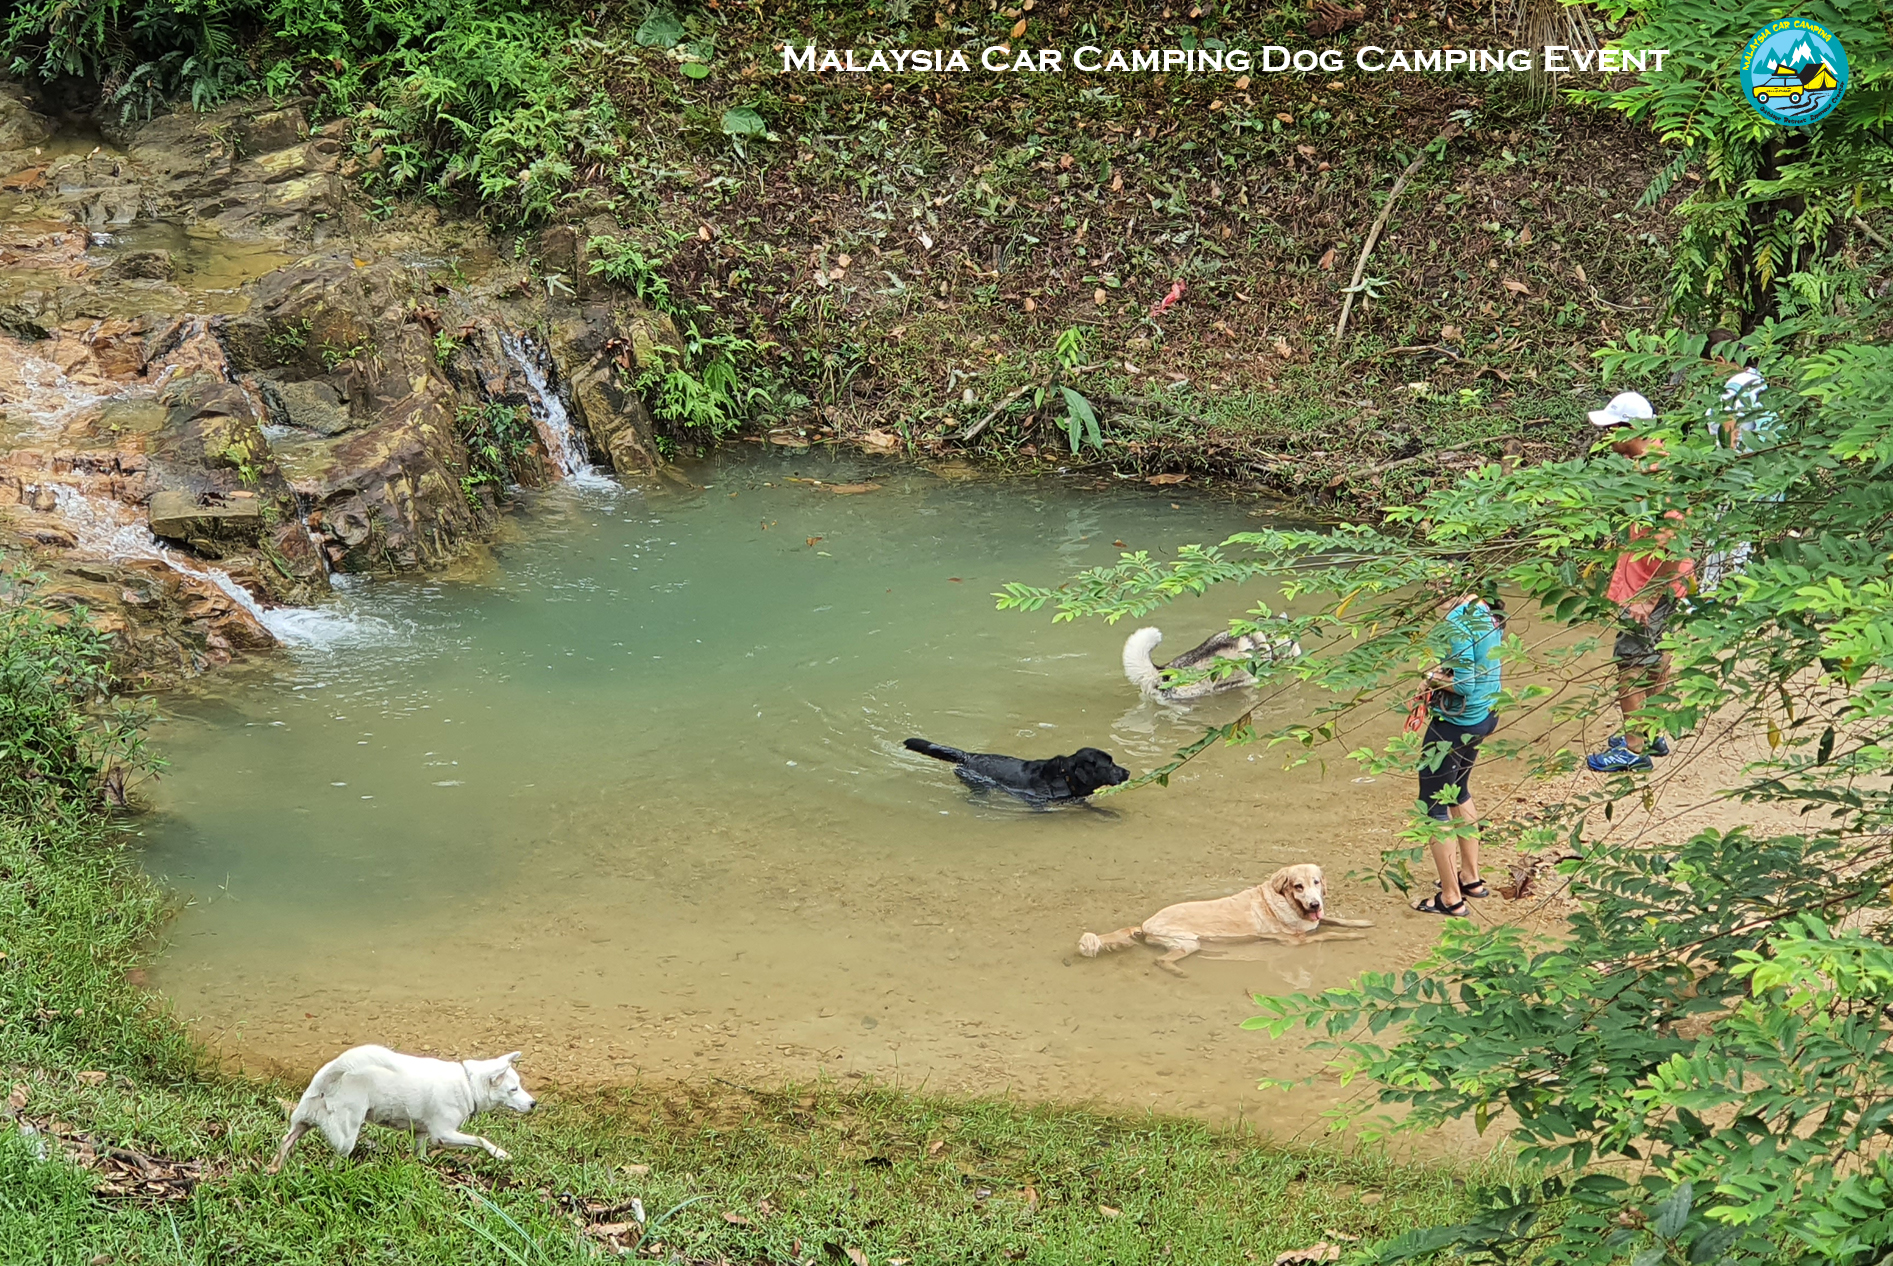 hiking_with_dog_malaysia_dog_camping_event_selangor_camping_site_malaysia_car_camping_private_event_organizer-2